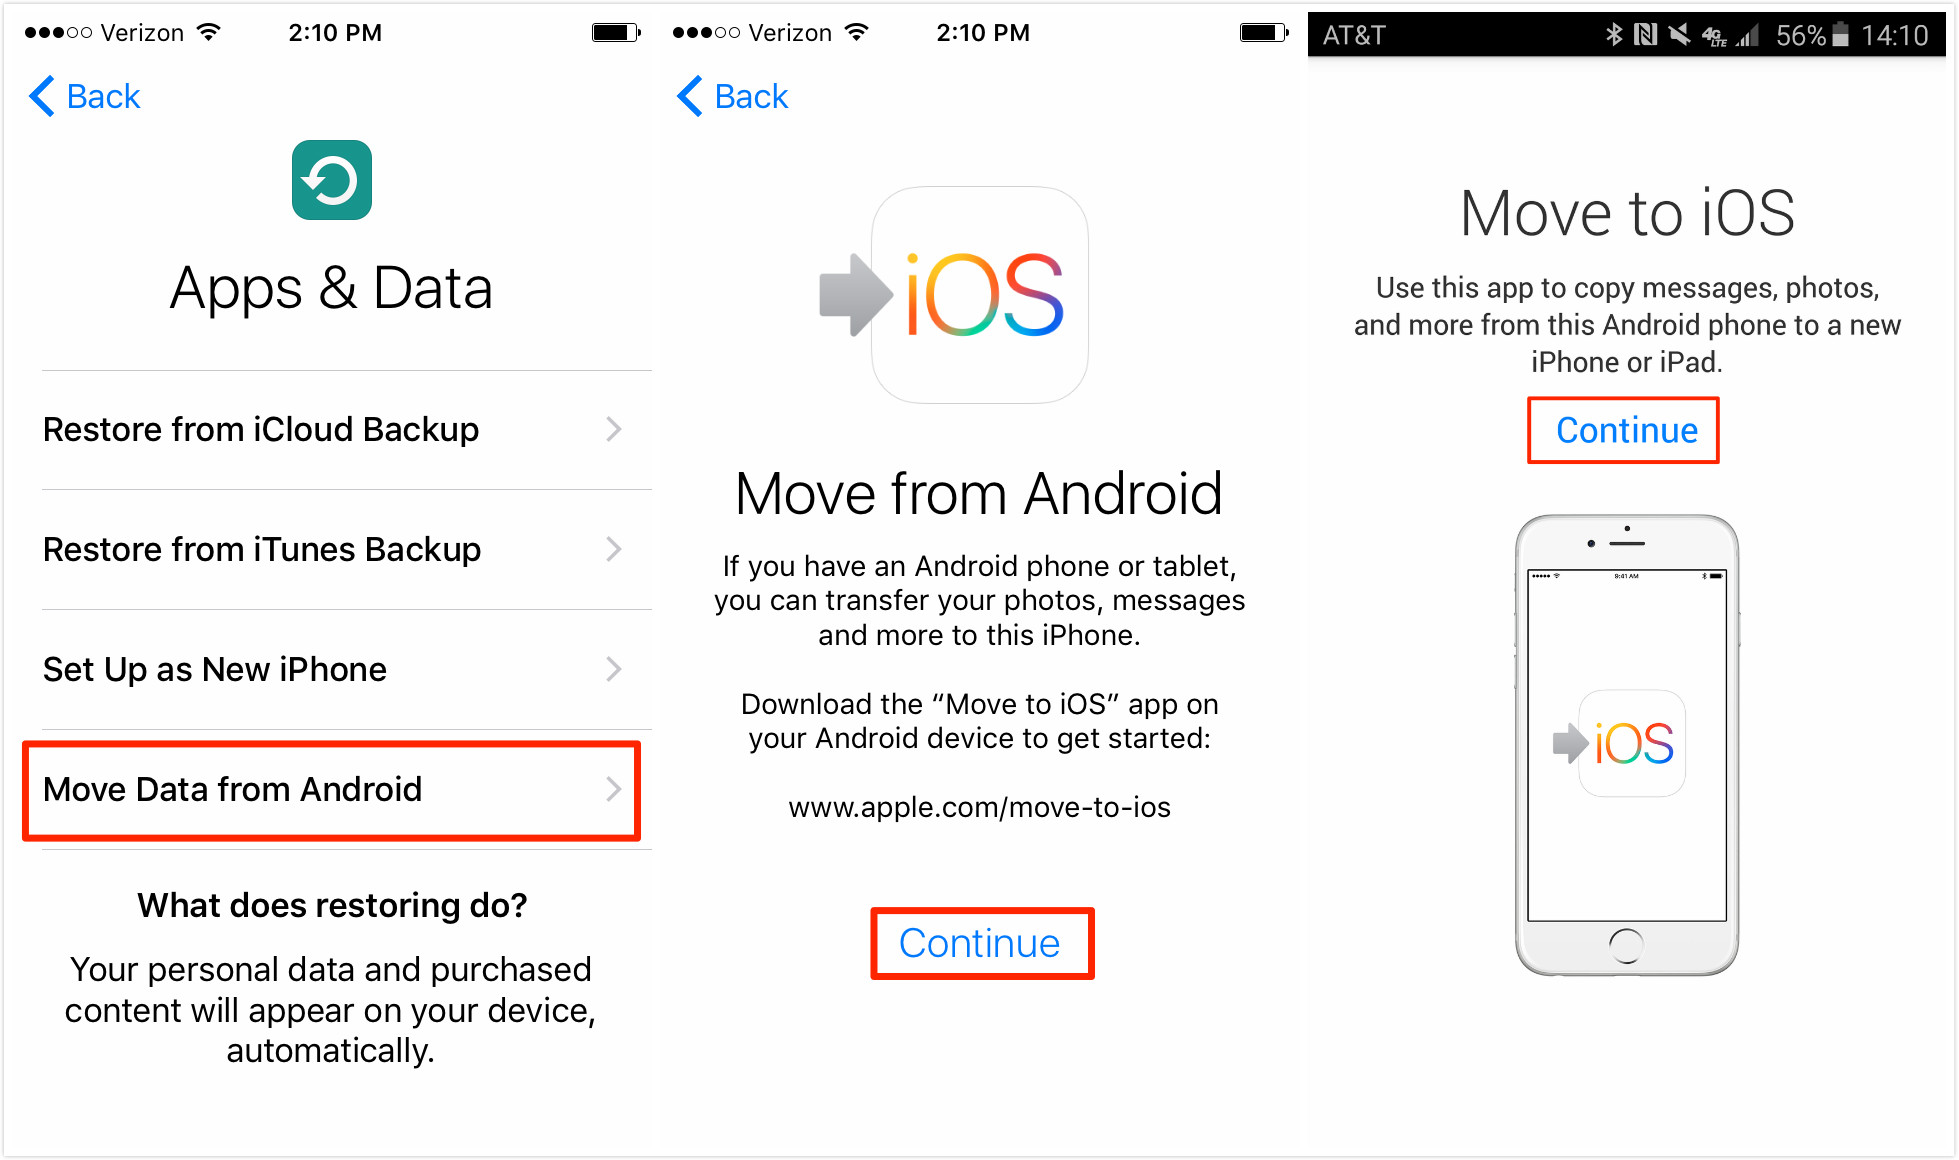 How to Transfer Data to New iPhone with Move to iOS - Step 1